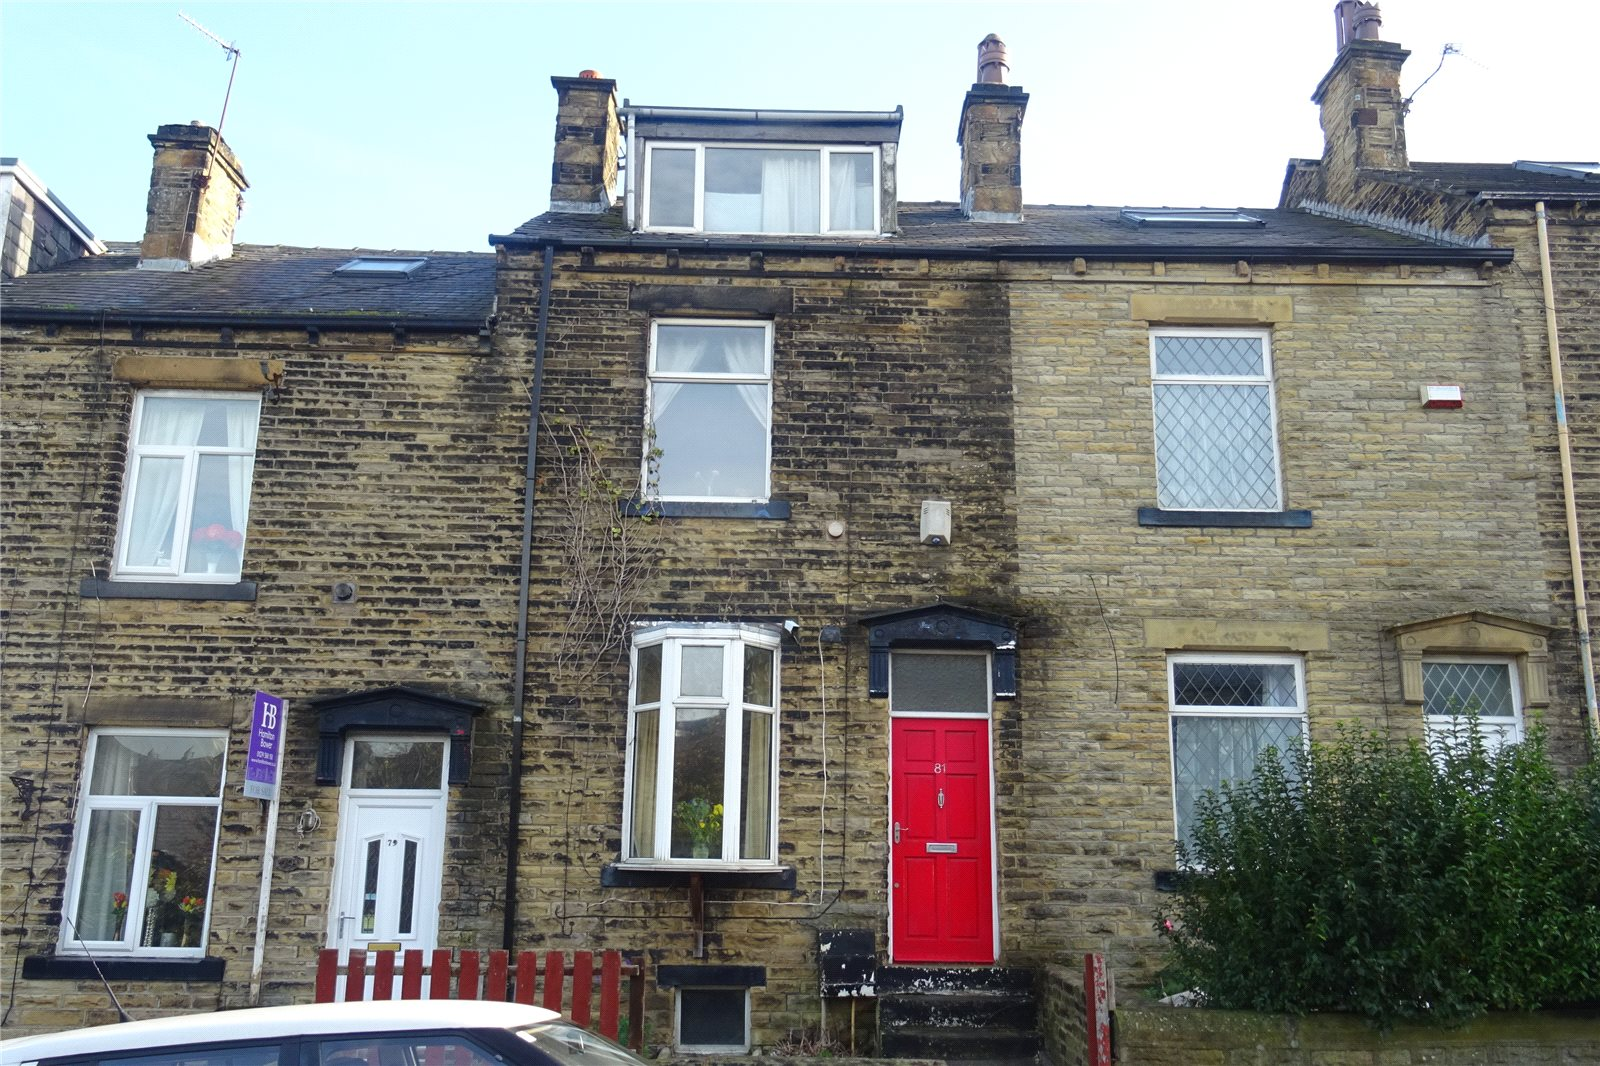 Whitegates Bradford 3 Bedroom House For Sale In Hastings